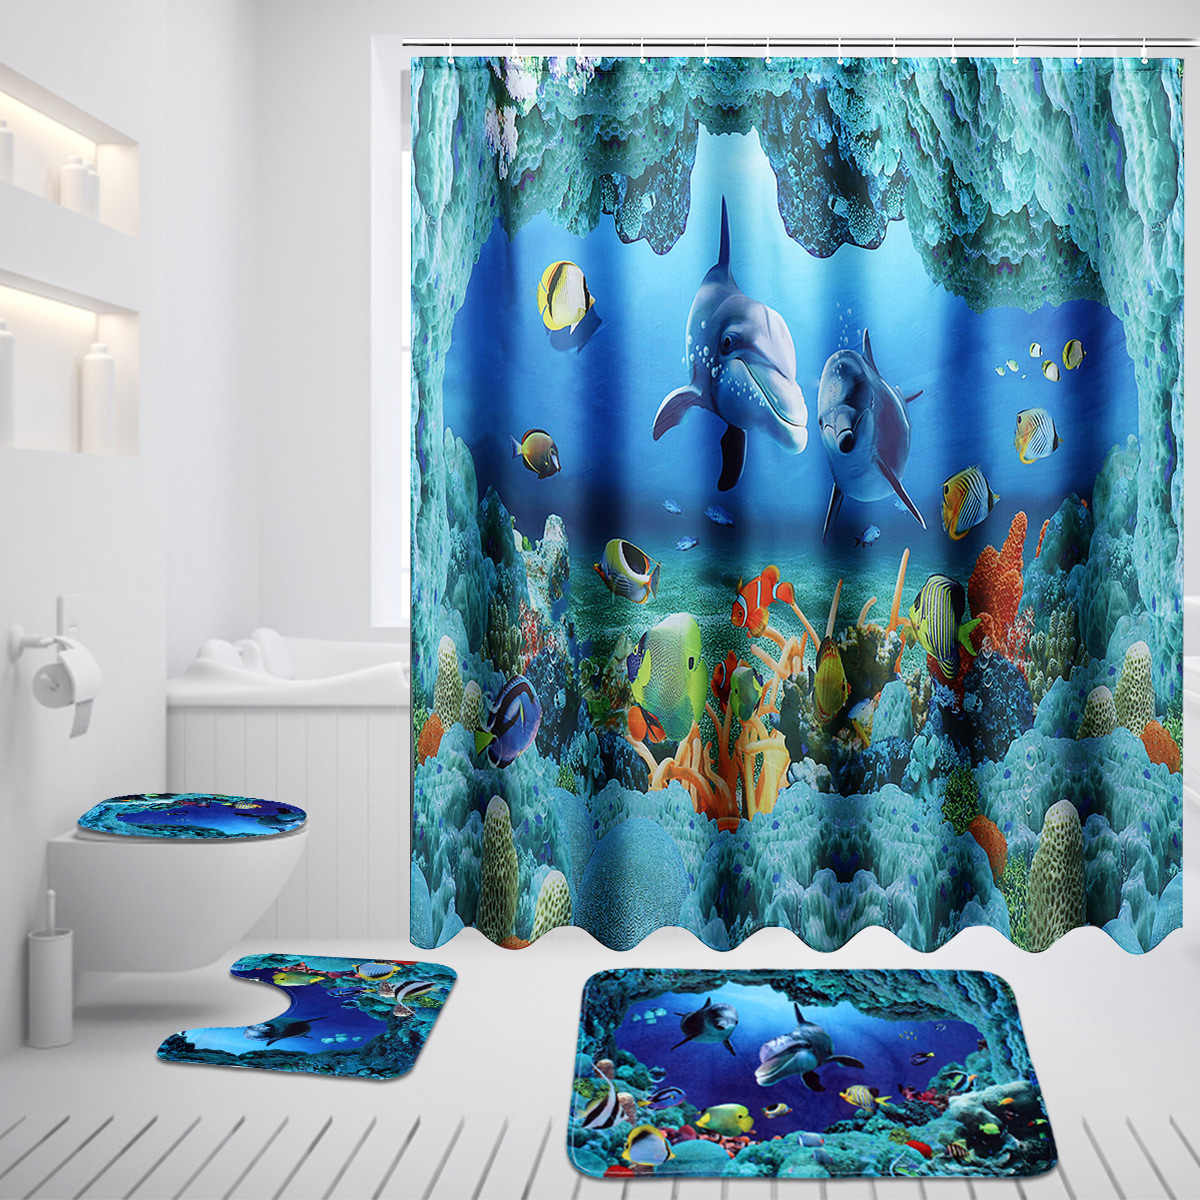 Ocean Dolphin Deep Sea Shower Curtain Polyester Waterproof Curtains for Bathroom + Pedestal Rug Lid Toilet Cover Bath Mat Set